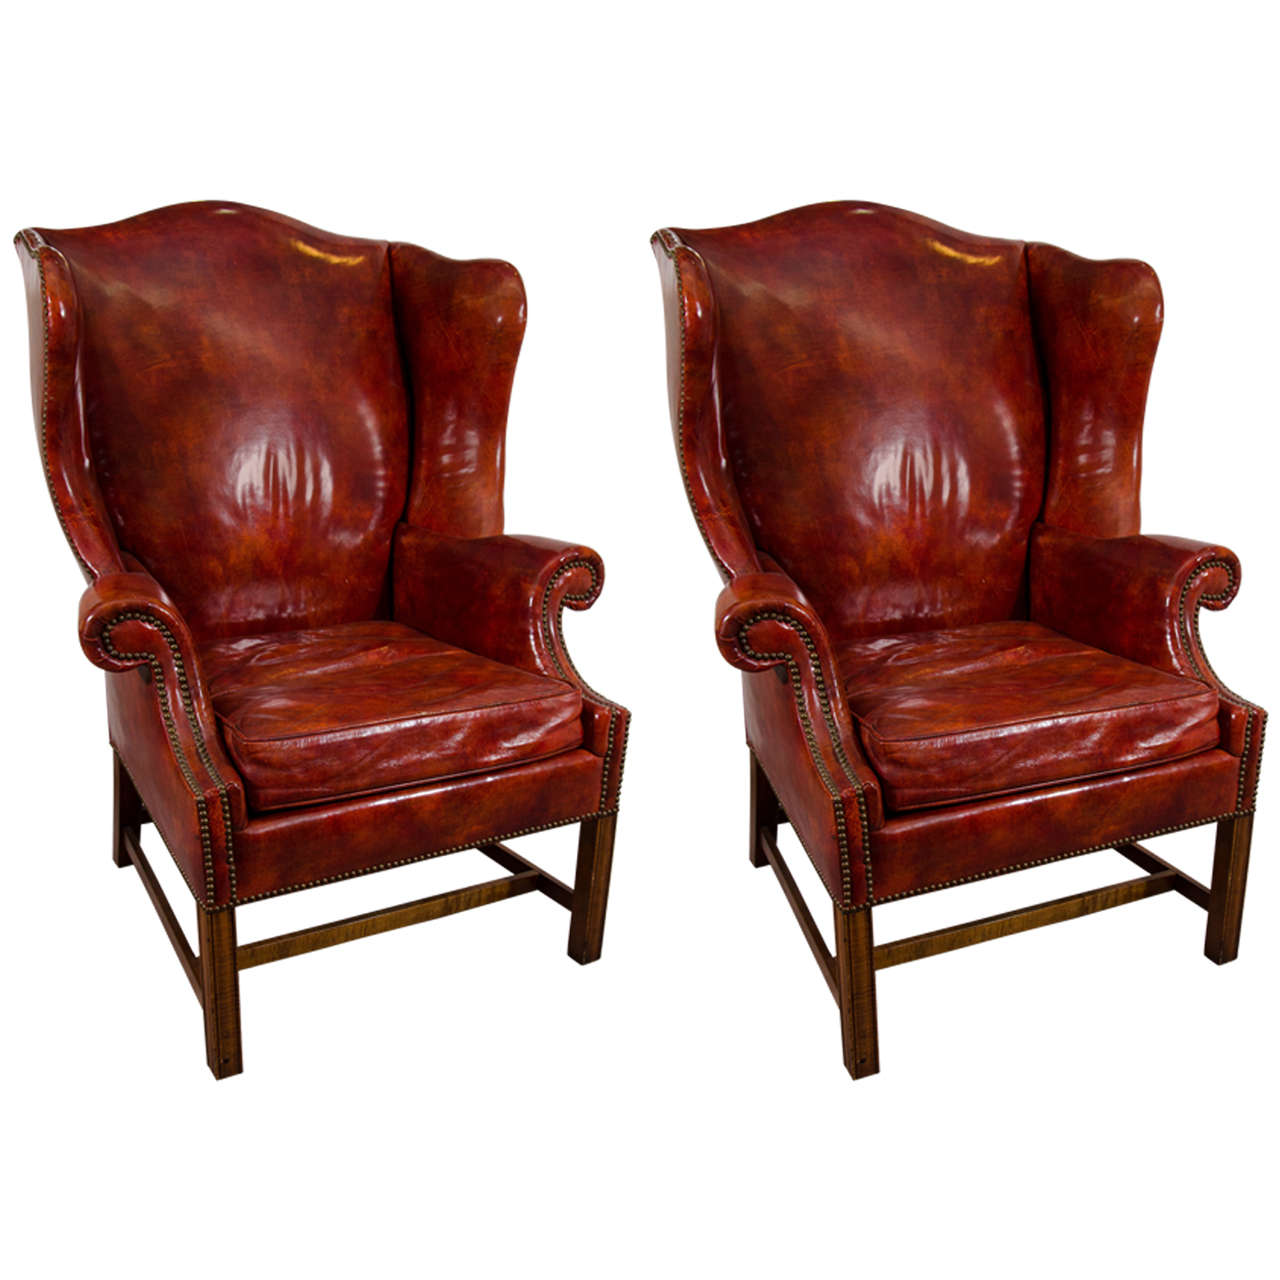 Beau Midcentury Pair Of Burgundy Leather Wing Chairs By Baker For Sale